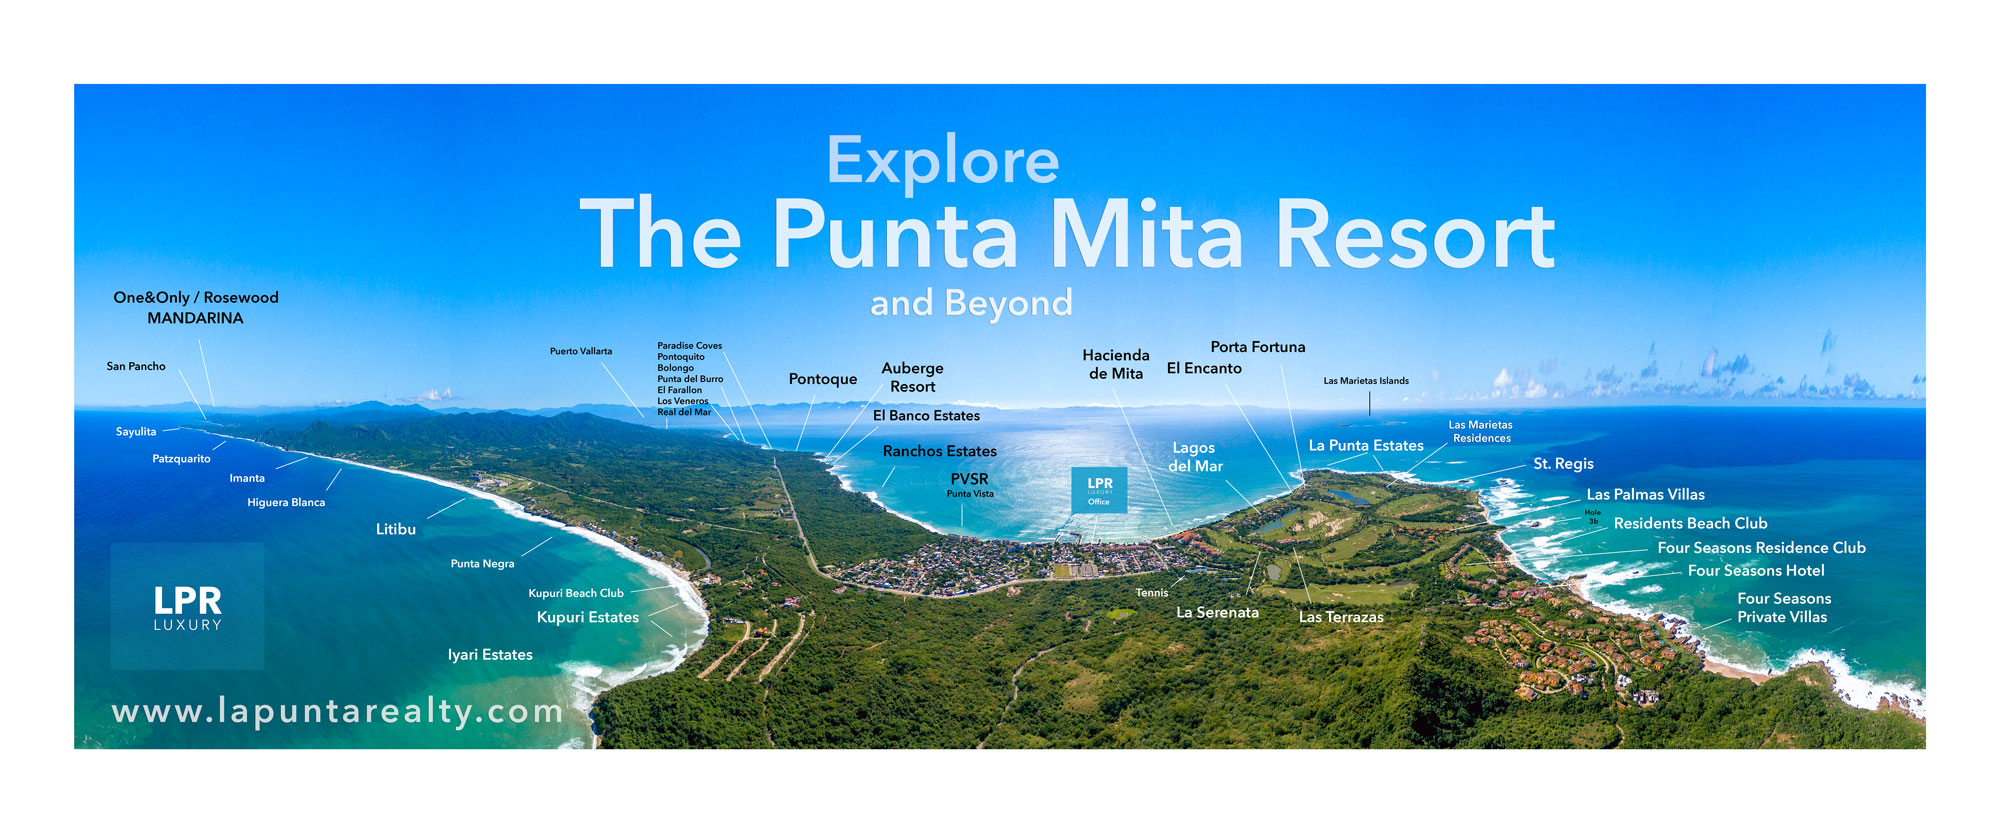 Explore the Punta Mita Resort and beyond... - Luxury Punta Mita / Puerto Vallarta Real Estate and Vacation Rentals